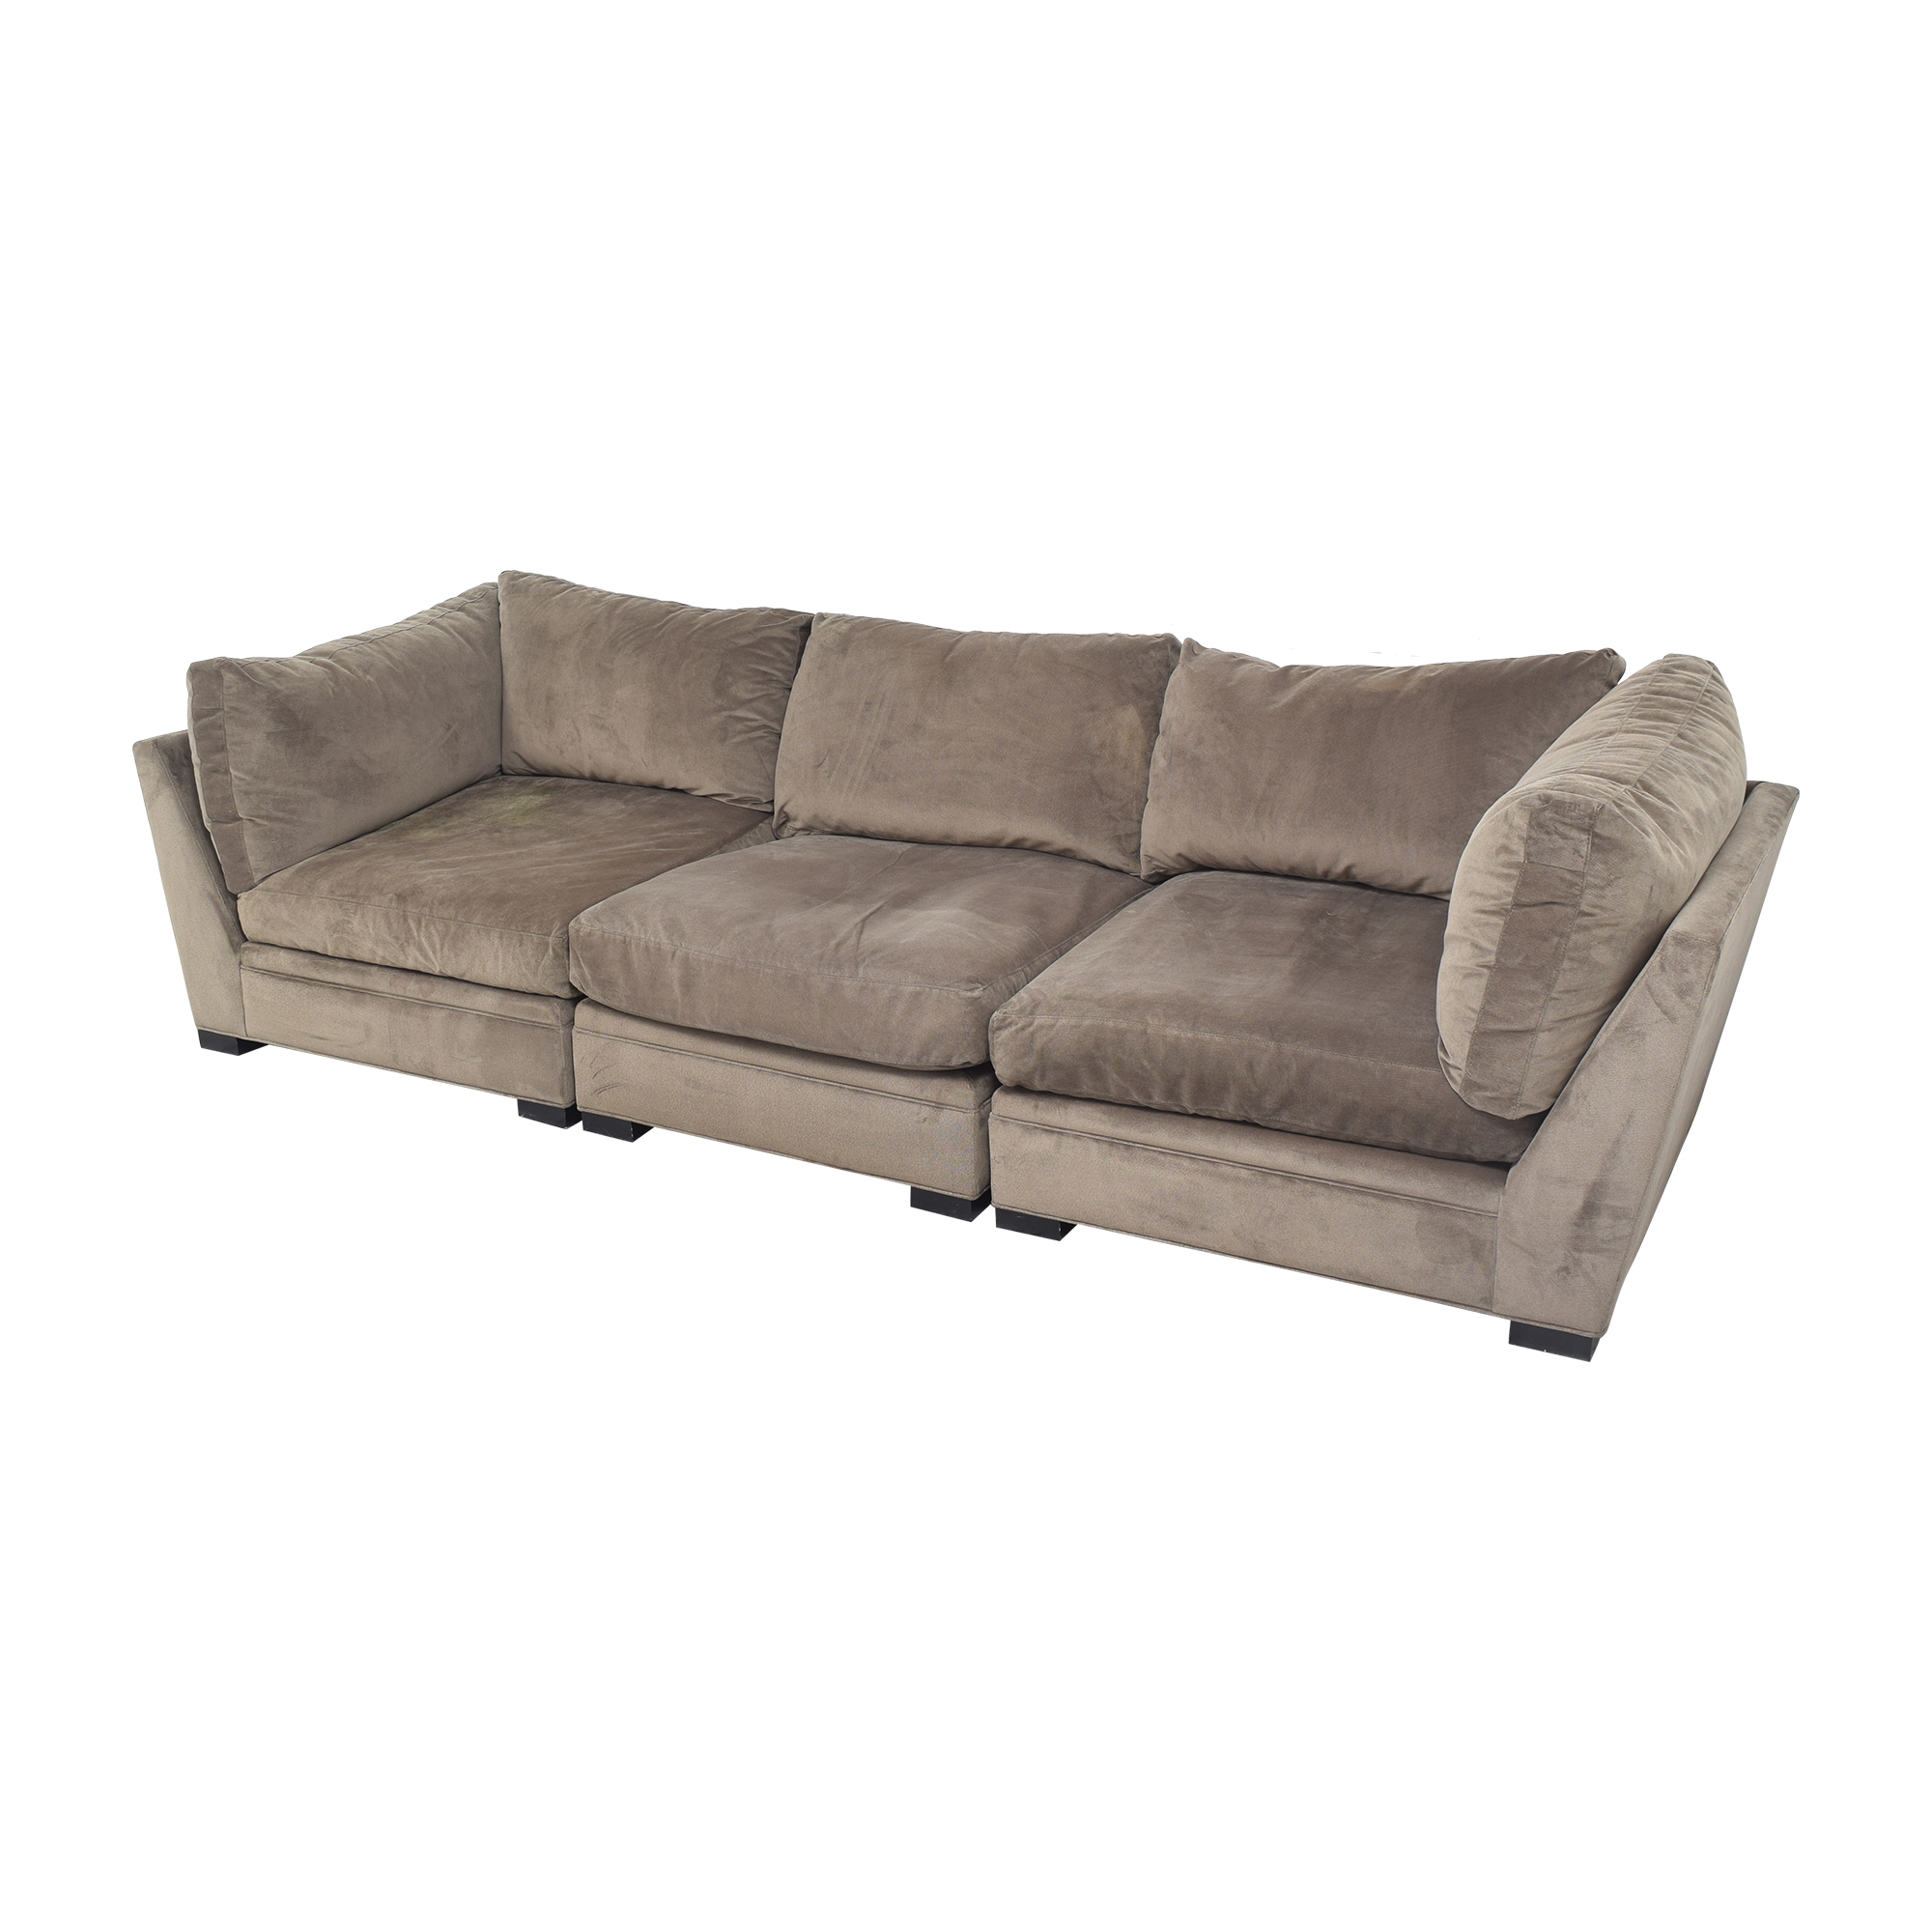 buy Raymour & Flanigan Sectional Sofa by Cindy Crawford Home Raymour & Flanigan Sofas